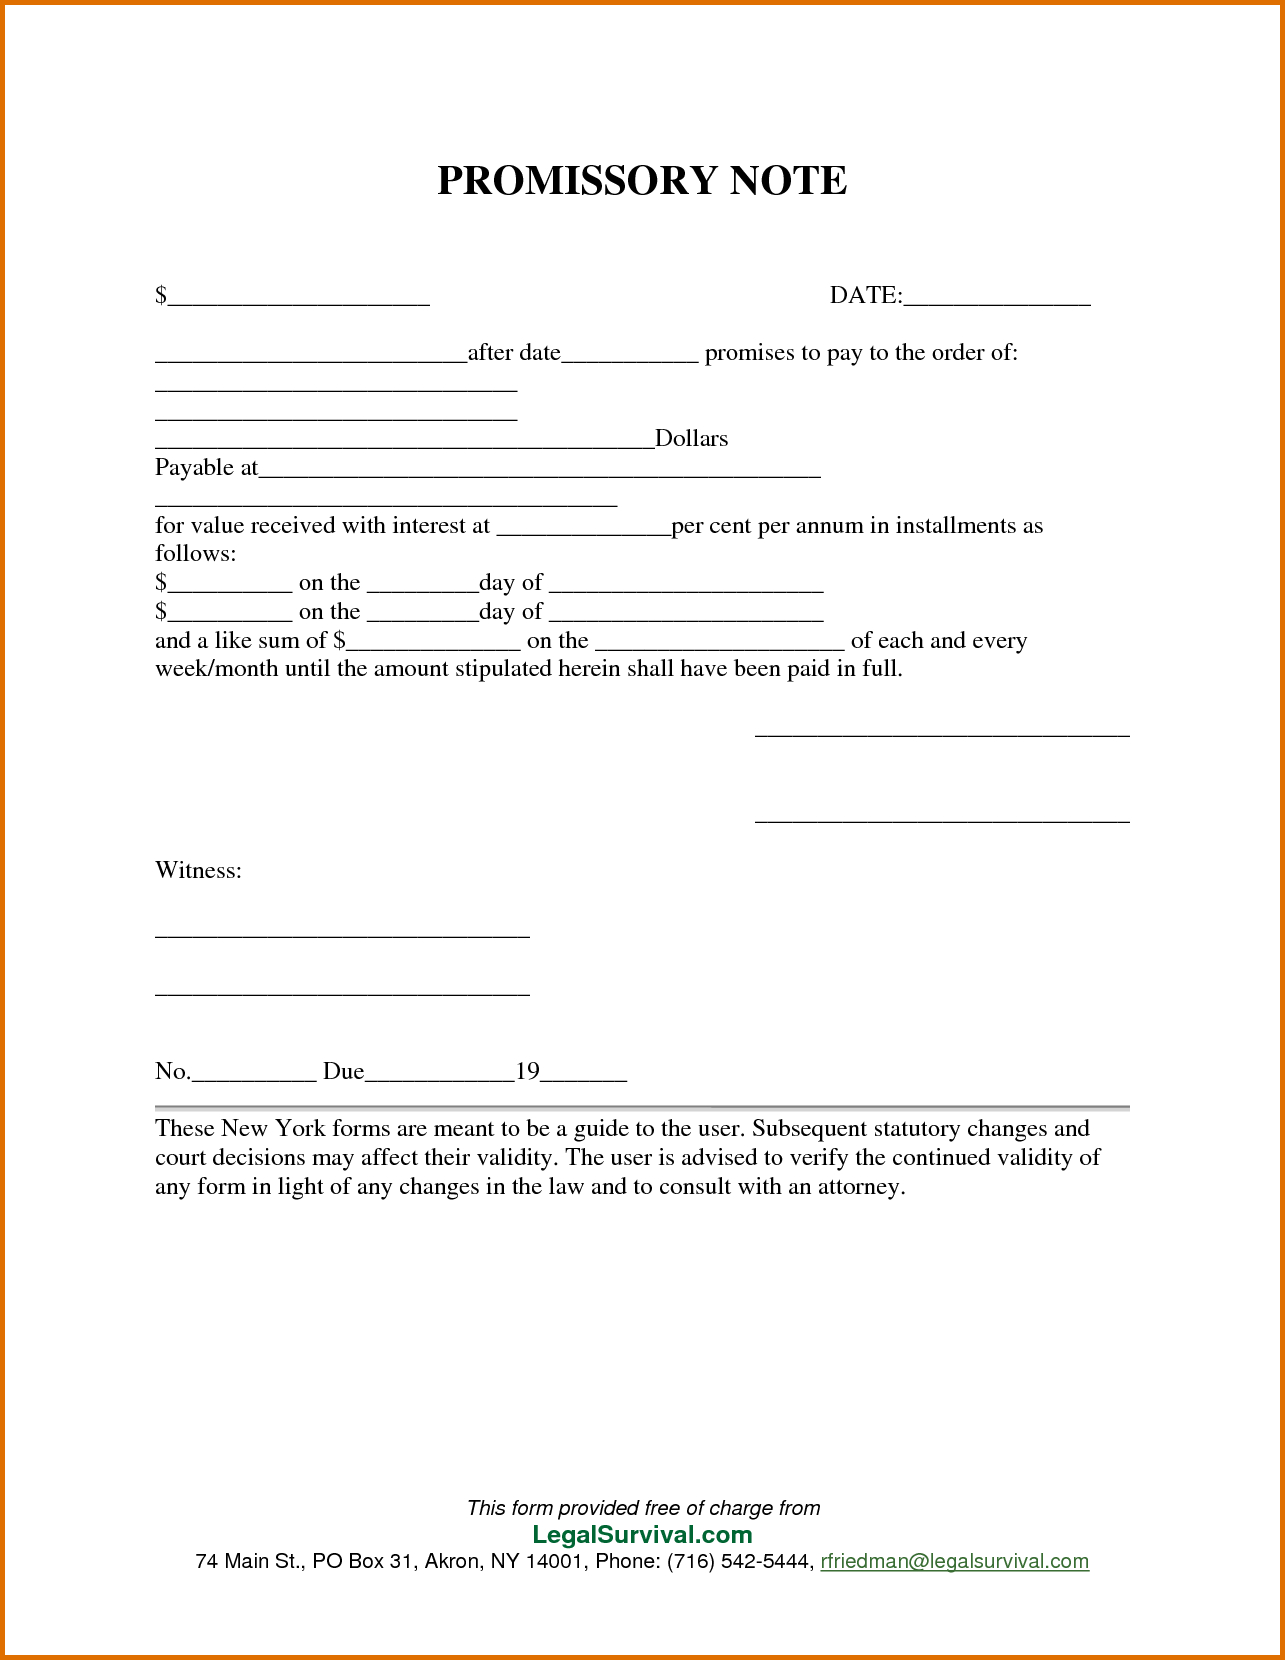 006 Template Ideas Free Promissory Note For Personal Loan - Free Printable Promissory Note For Personal Loan